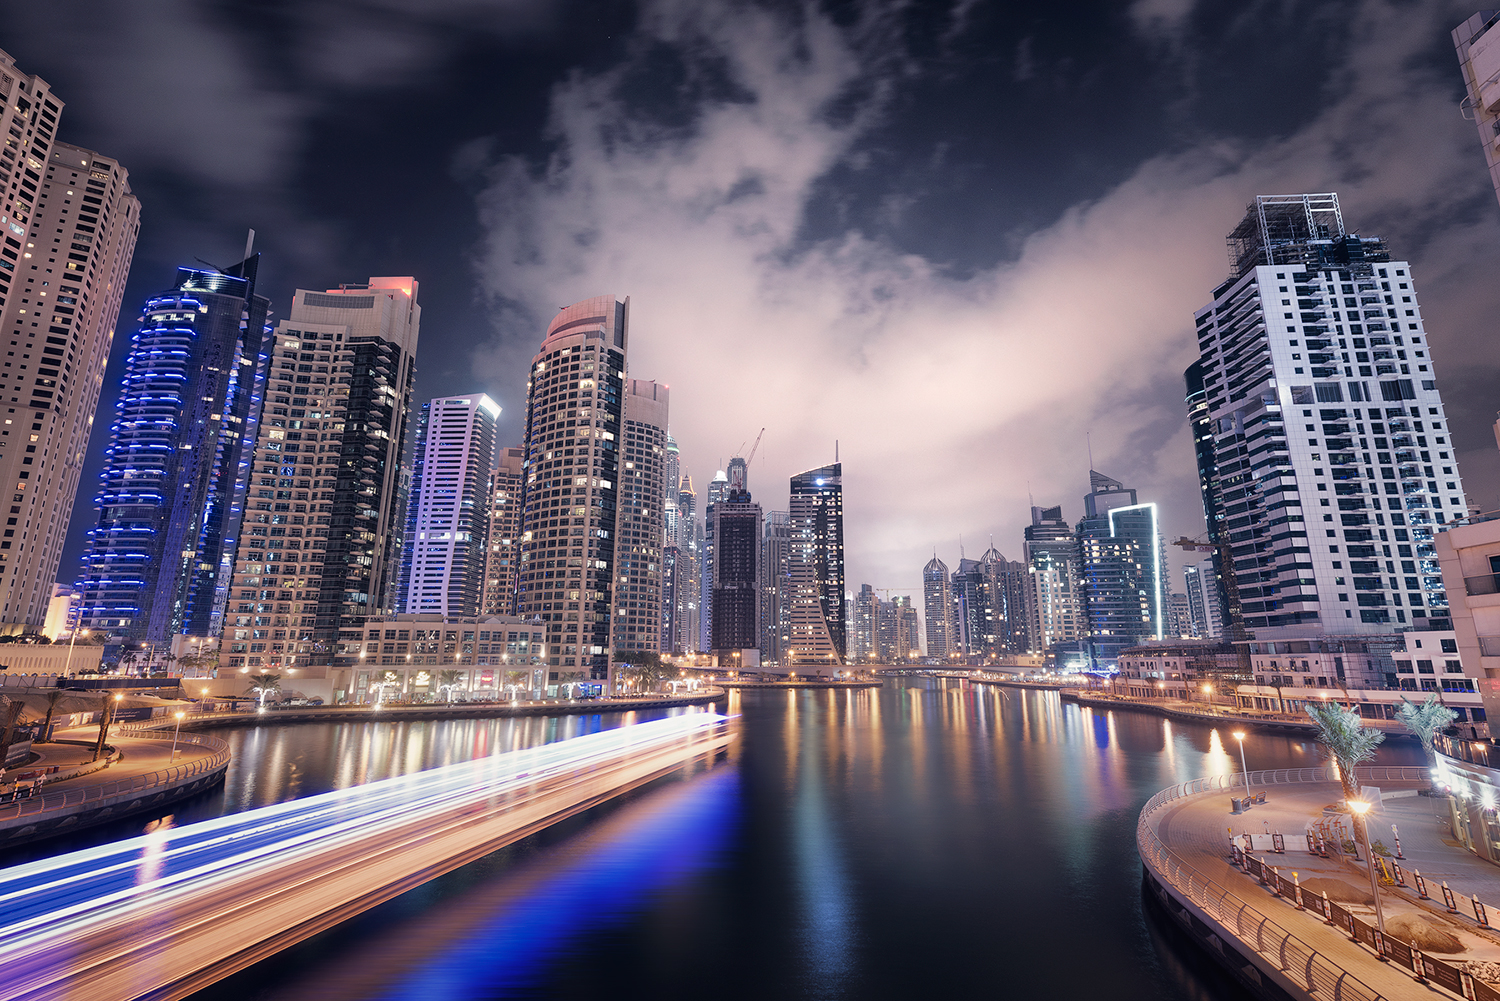 How to Create a Dynamic Cityscape with 5 Exposures and Digital Blending In Photoshop